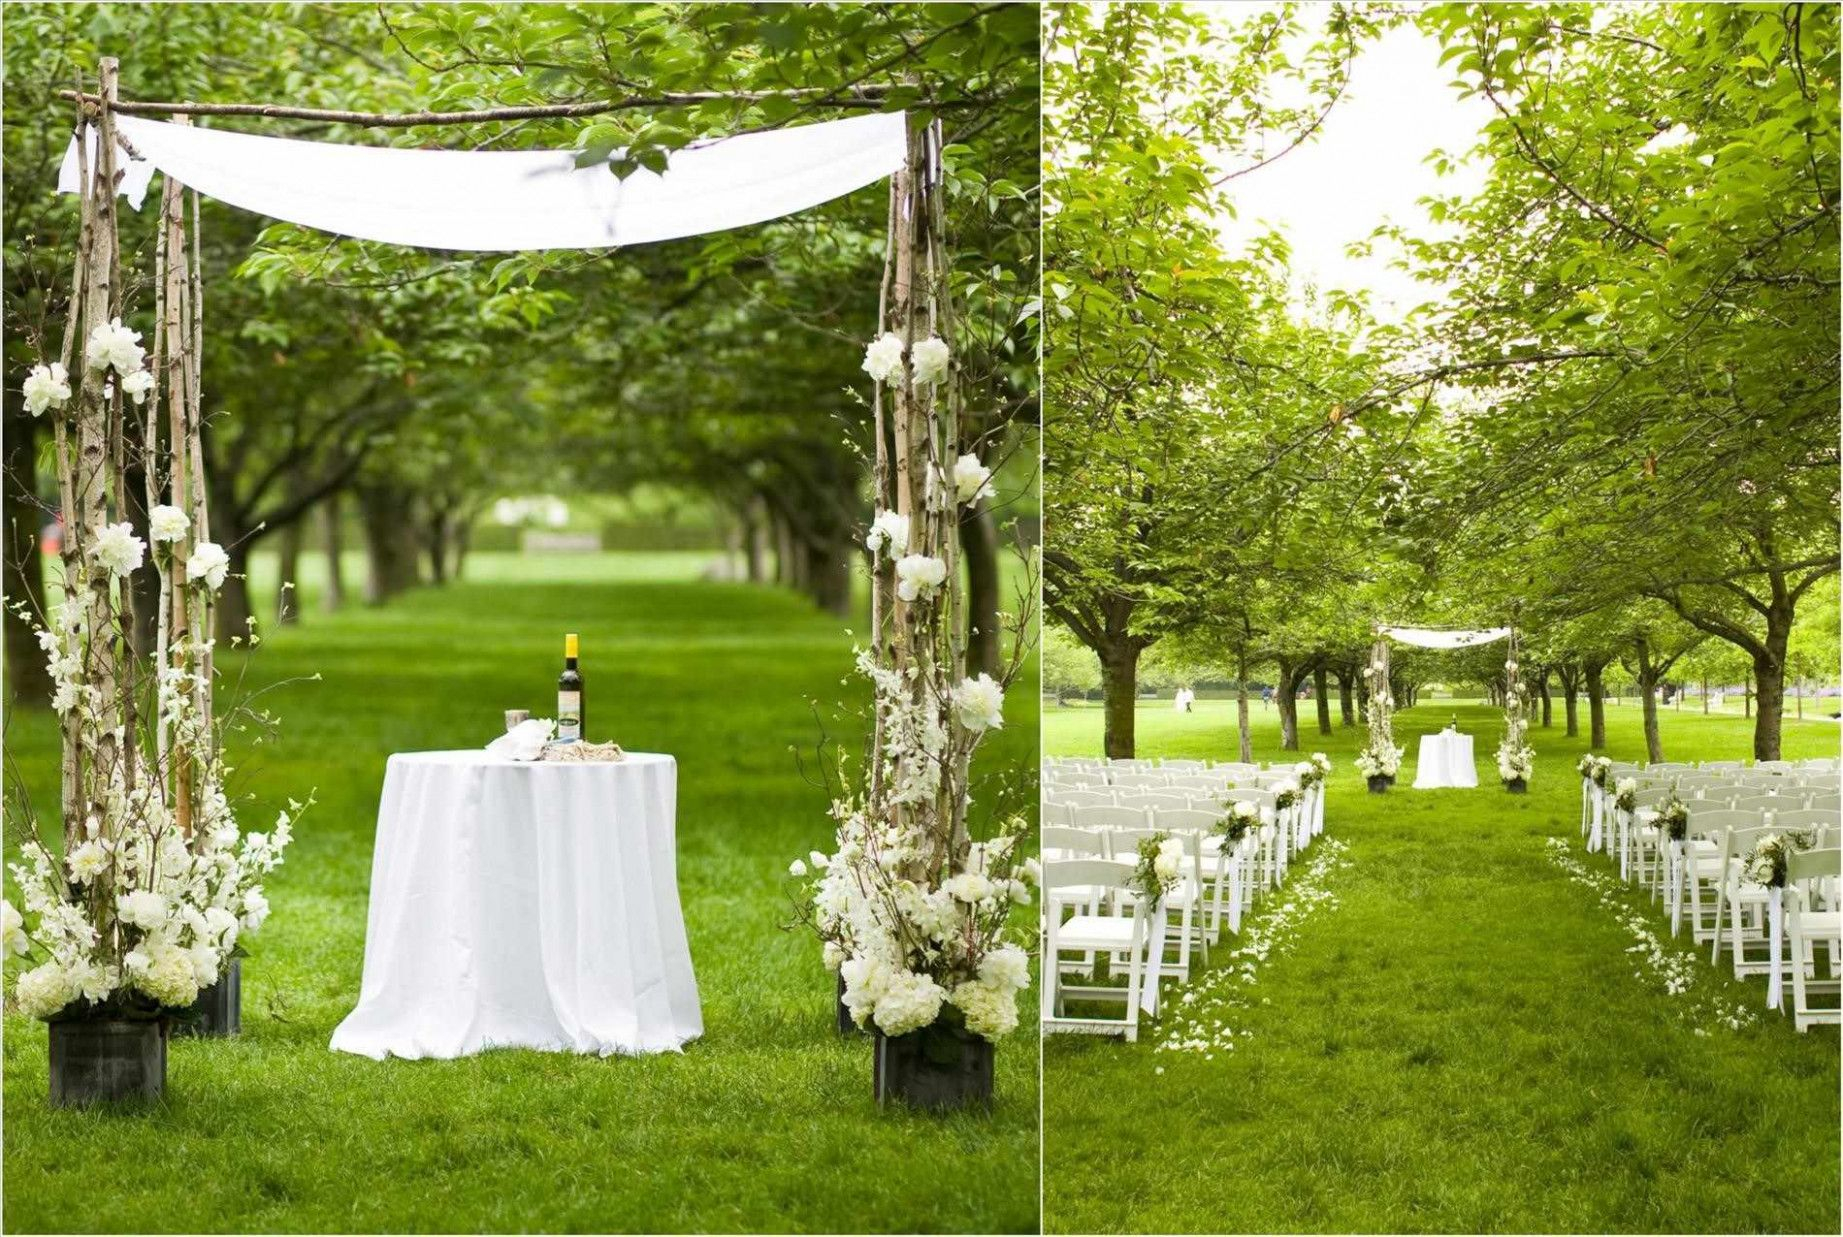 Wedding Ideas On A Budget Colors Simple Wedding Inspirations inside Small Backyard Wedding Ideas On A Budget